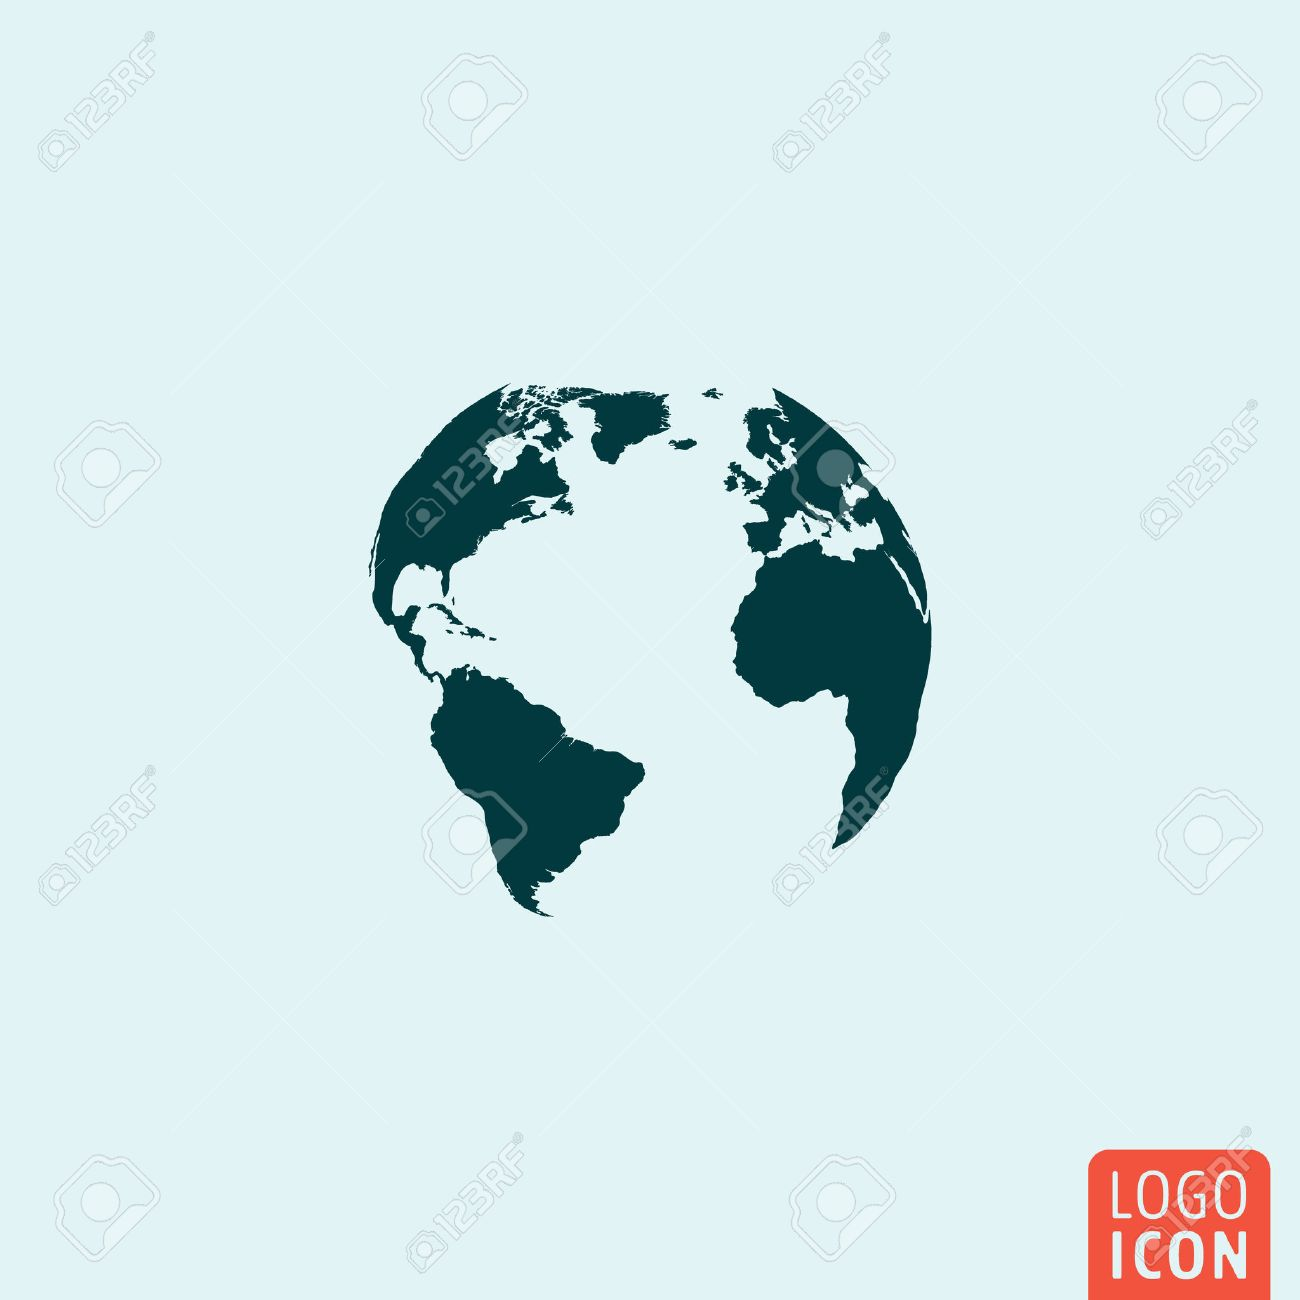 Earth globe icon earth globe icon earth globe logo earth globe earth globe icon earth globe icon earth globe logo earth globe symbol gumiabroncs Image collections